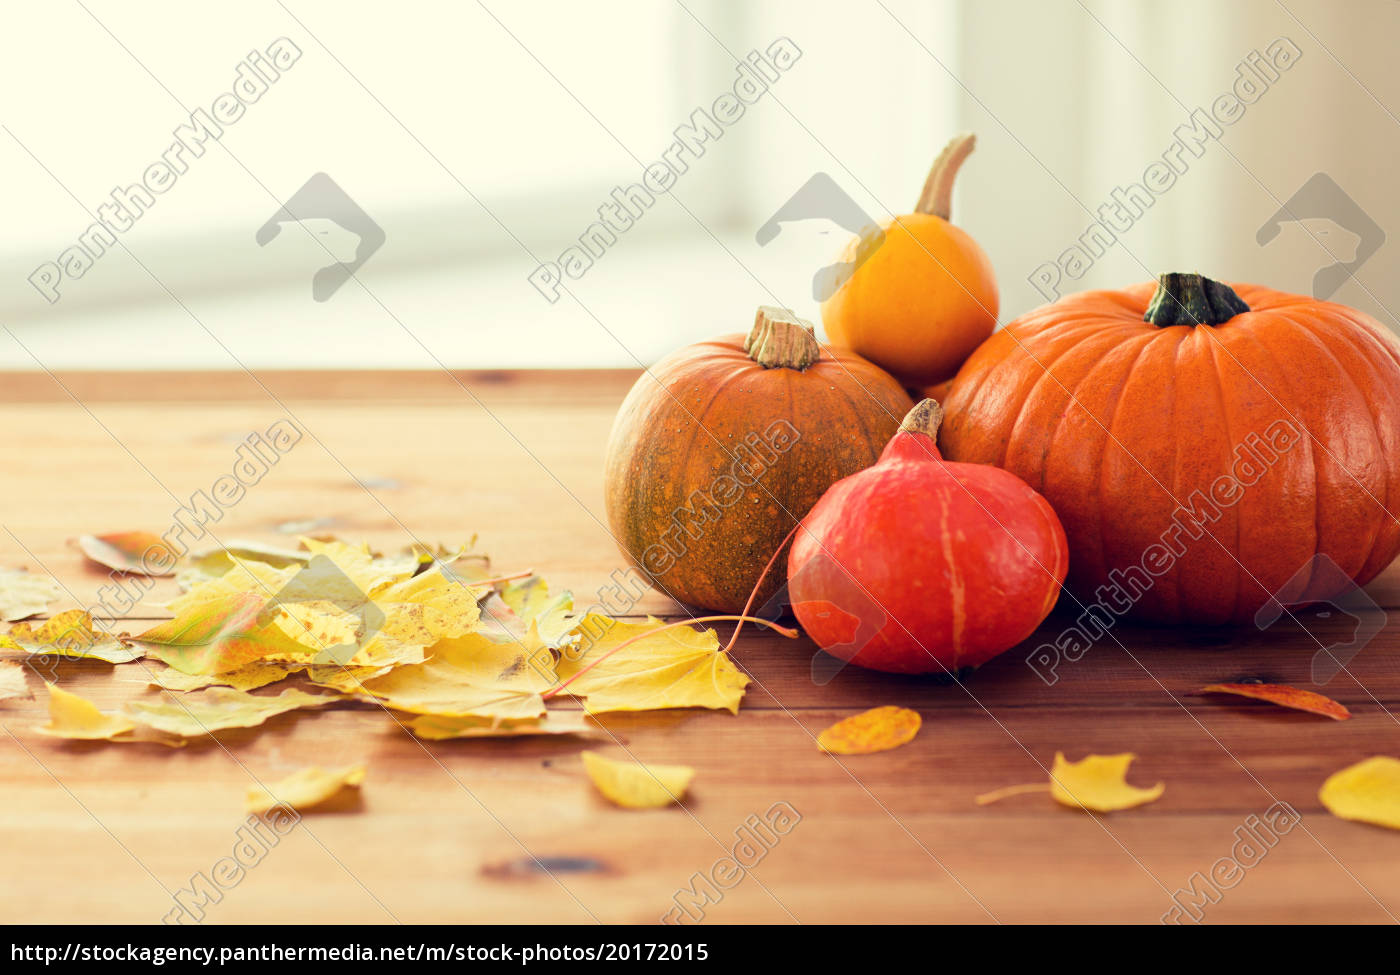 close, up, of, pumpkins, on, wooden - 20172015